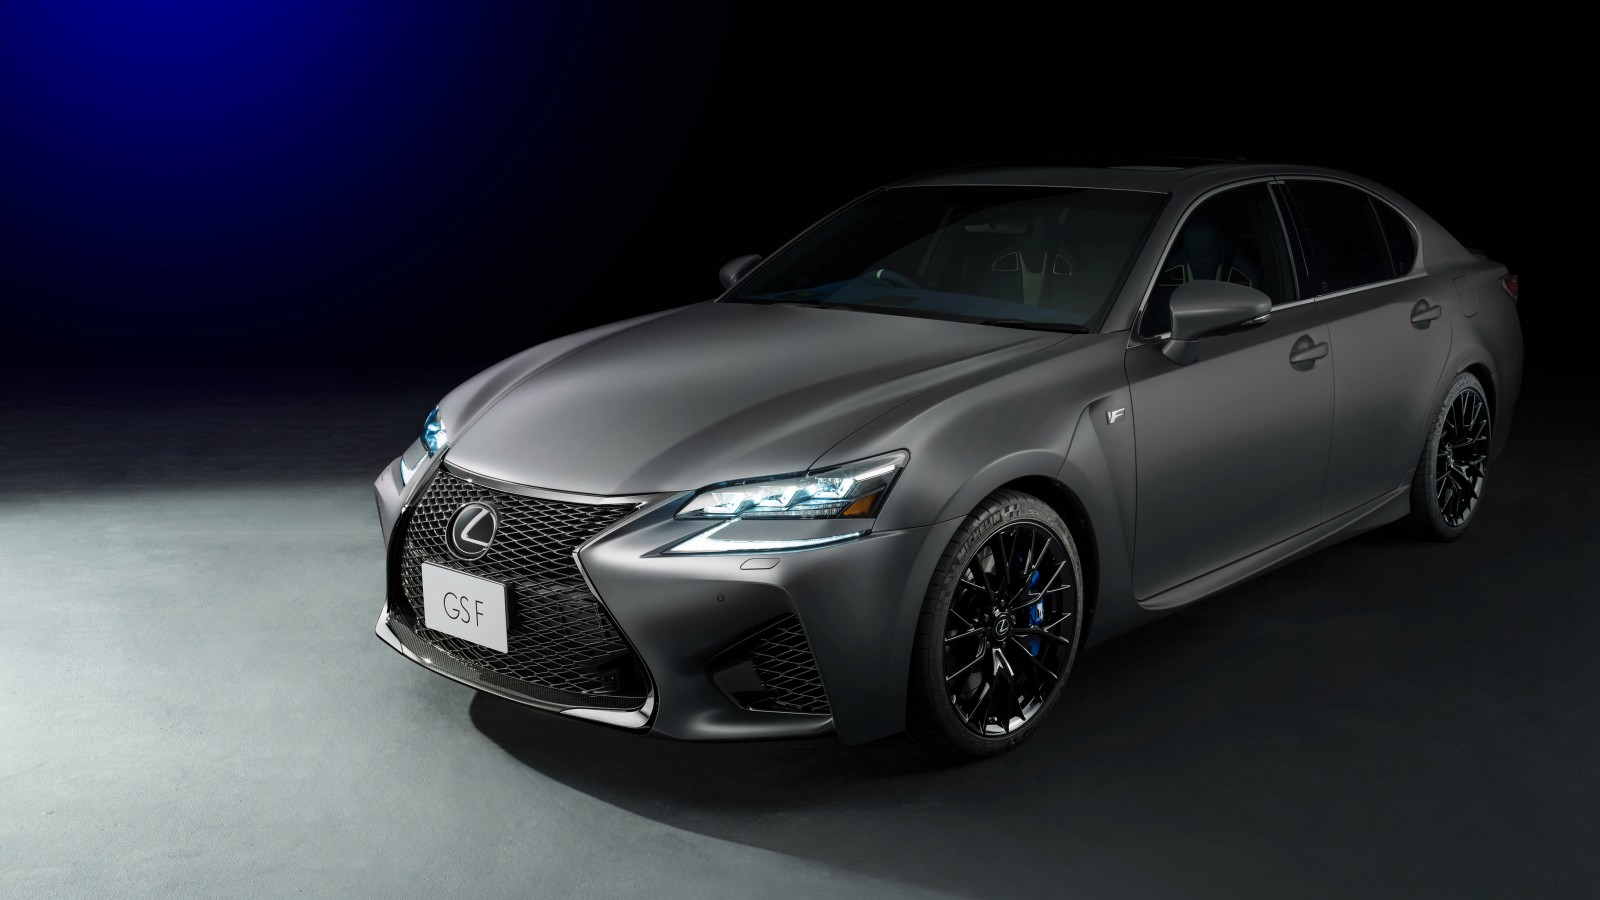 Lexus Is 350 >> 2018 Lexus GS F 10th Anniversary Limited Edition 4K Wallpaper | HD Car Wallpapers | ID #8940